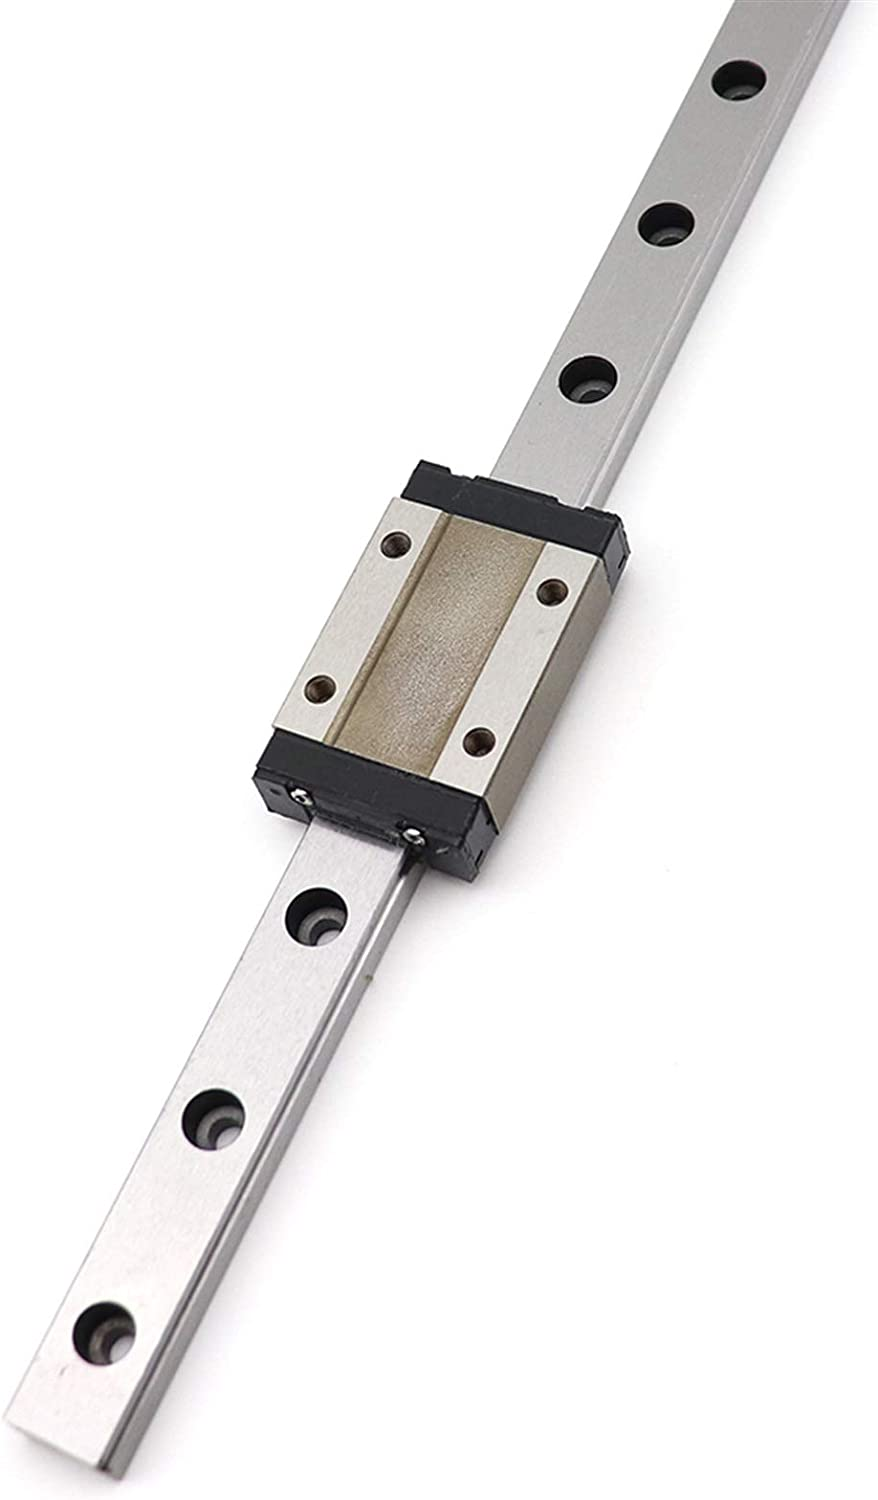 JBZD Linear Guides Small Guide CNC Sale Special Price Prin 3D Industry No. 1 Carriage